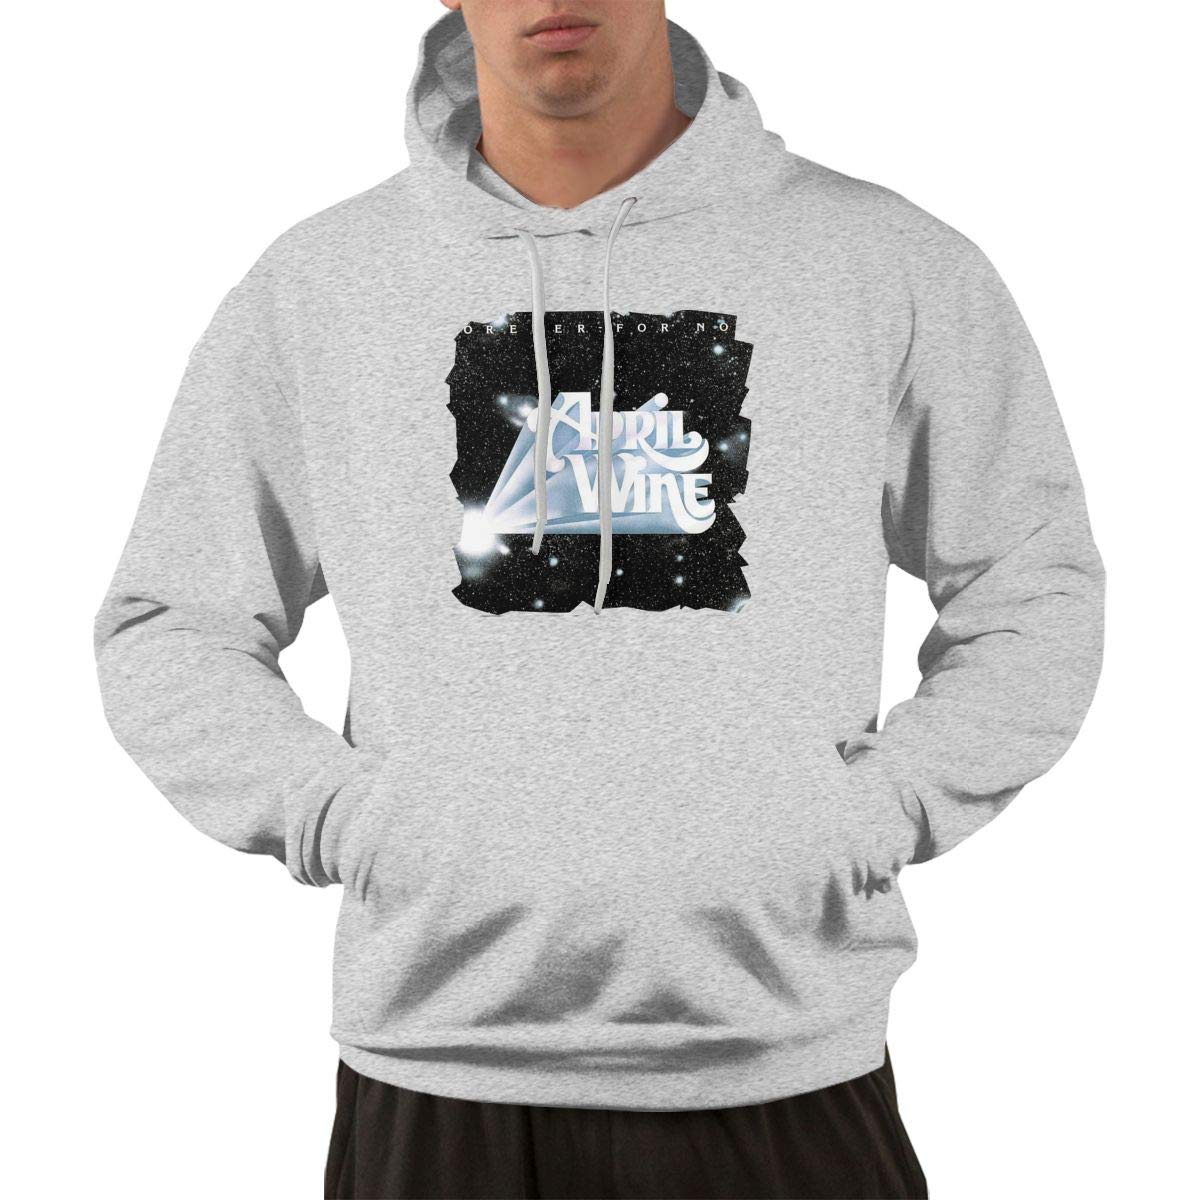 Erman S Pullover Comfortable Gray Print April Wine Logo Hooded Shirts With Pocket X